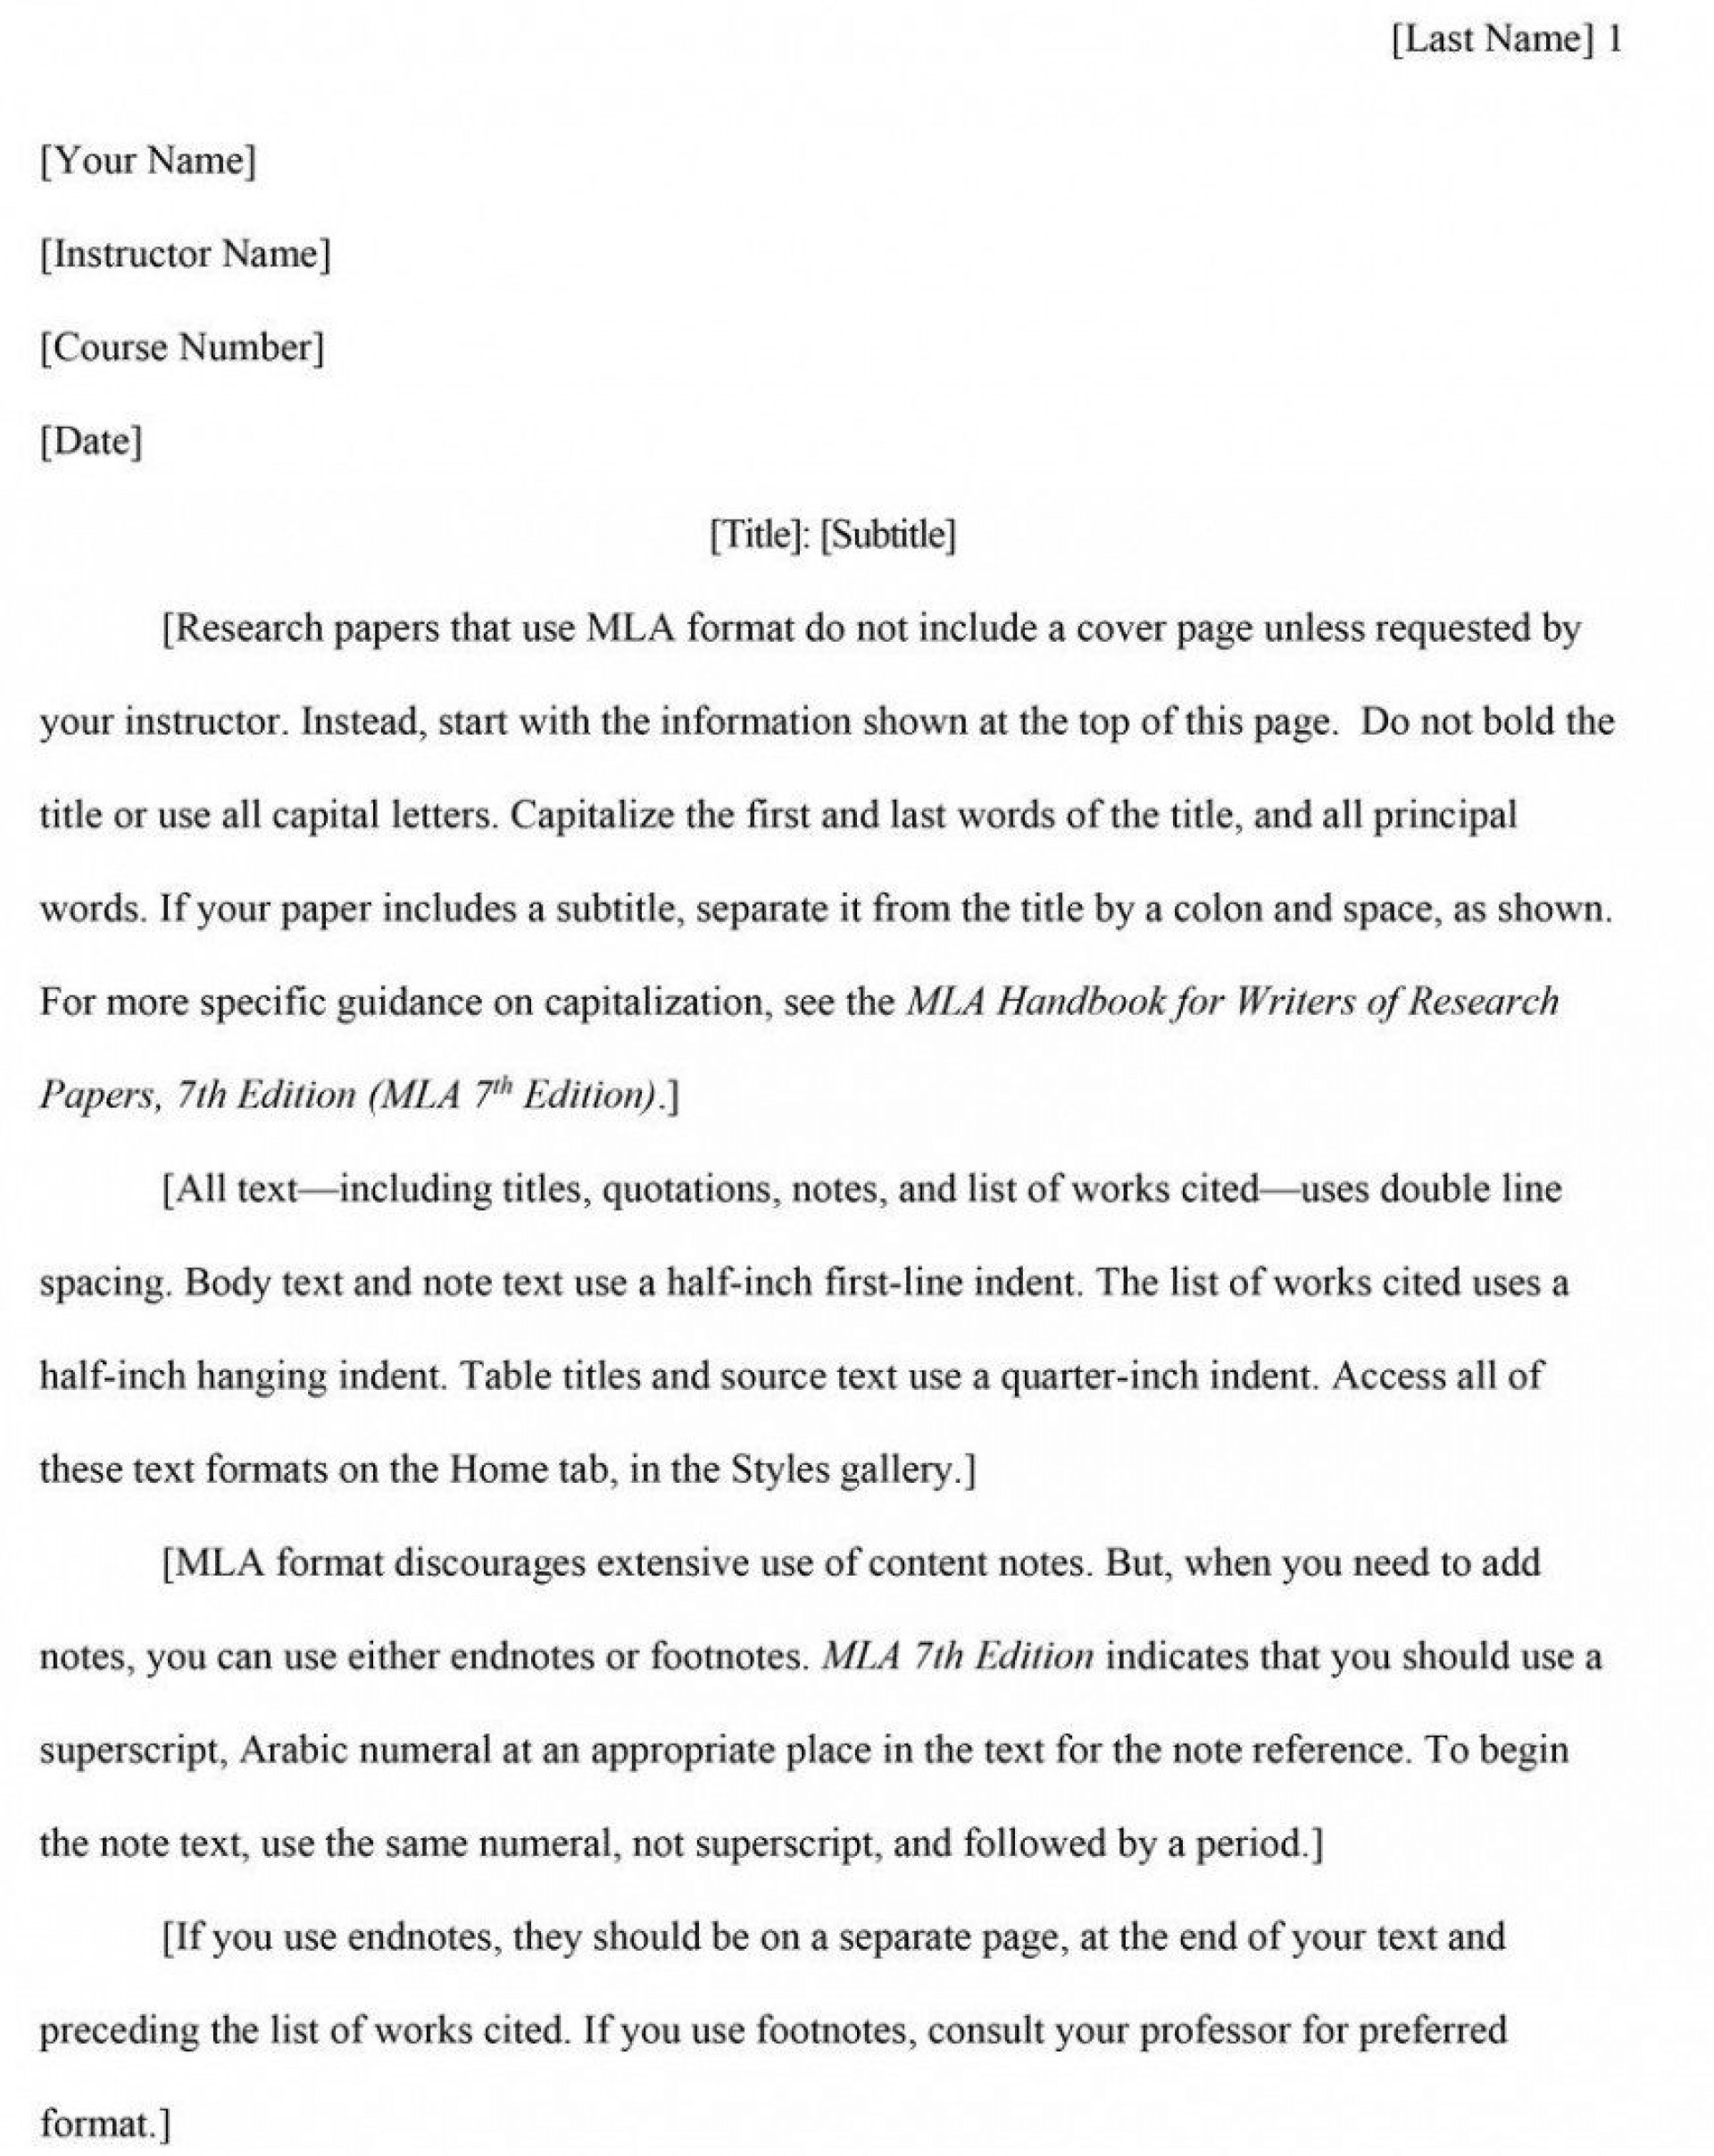 004 Awful Research Topic Proposal Template High Resolution  Format Paper Example1920